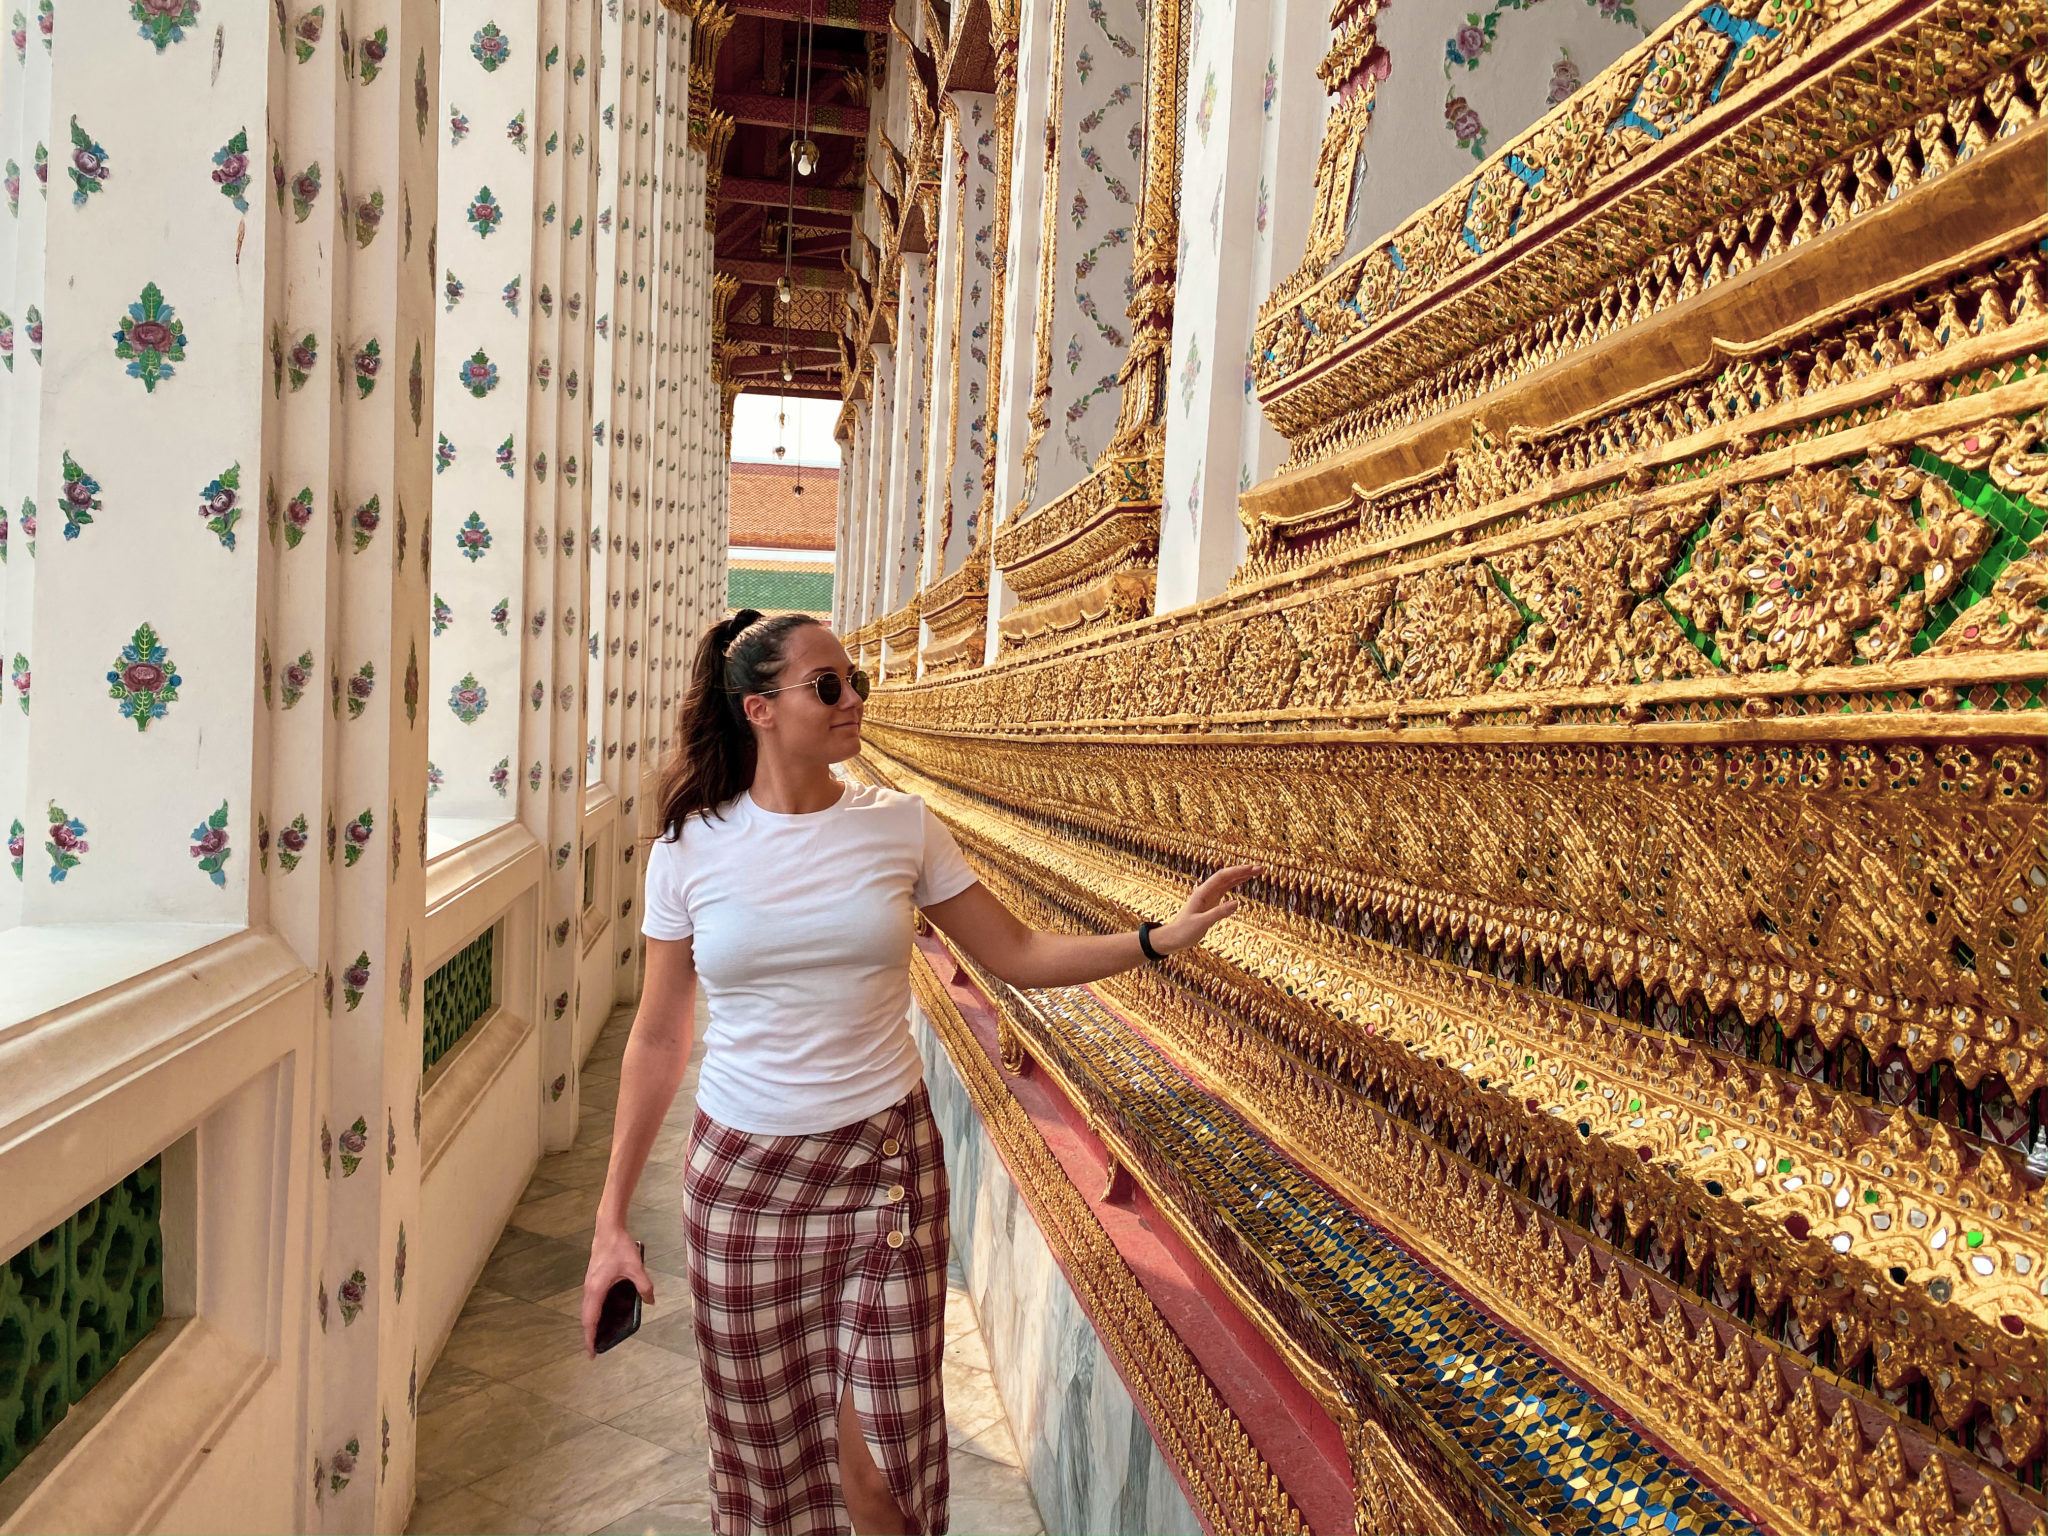 Wat Arun Ratchavararam - 3 days itinerary in Bangkok, Thailand - Travel blogger Michaella from Quite a Looker review sightseeing